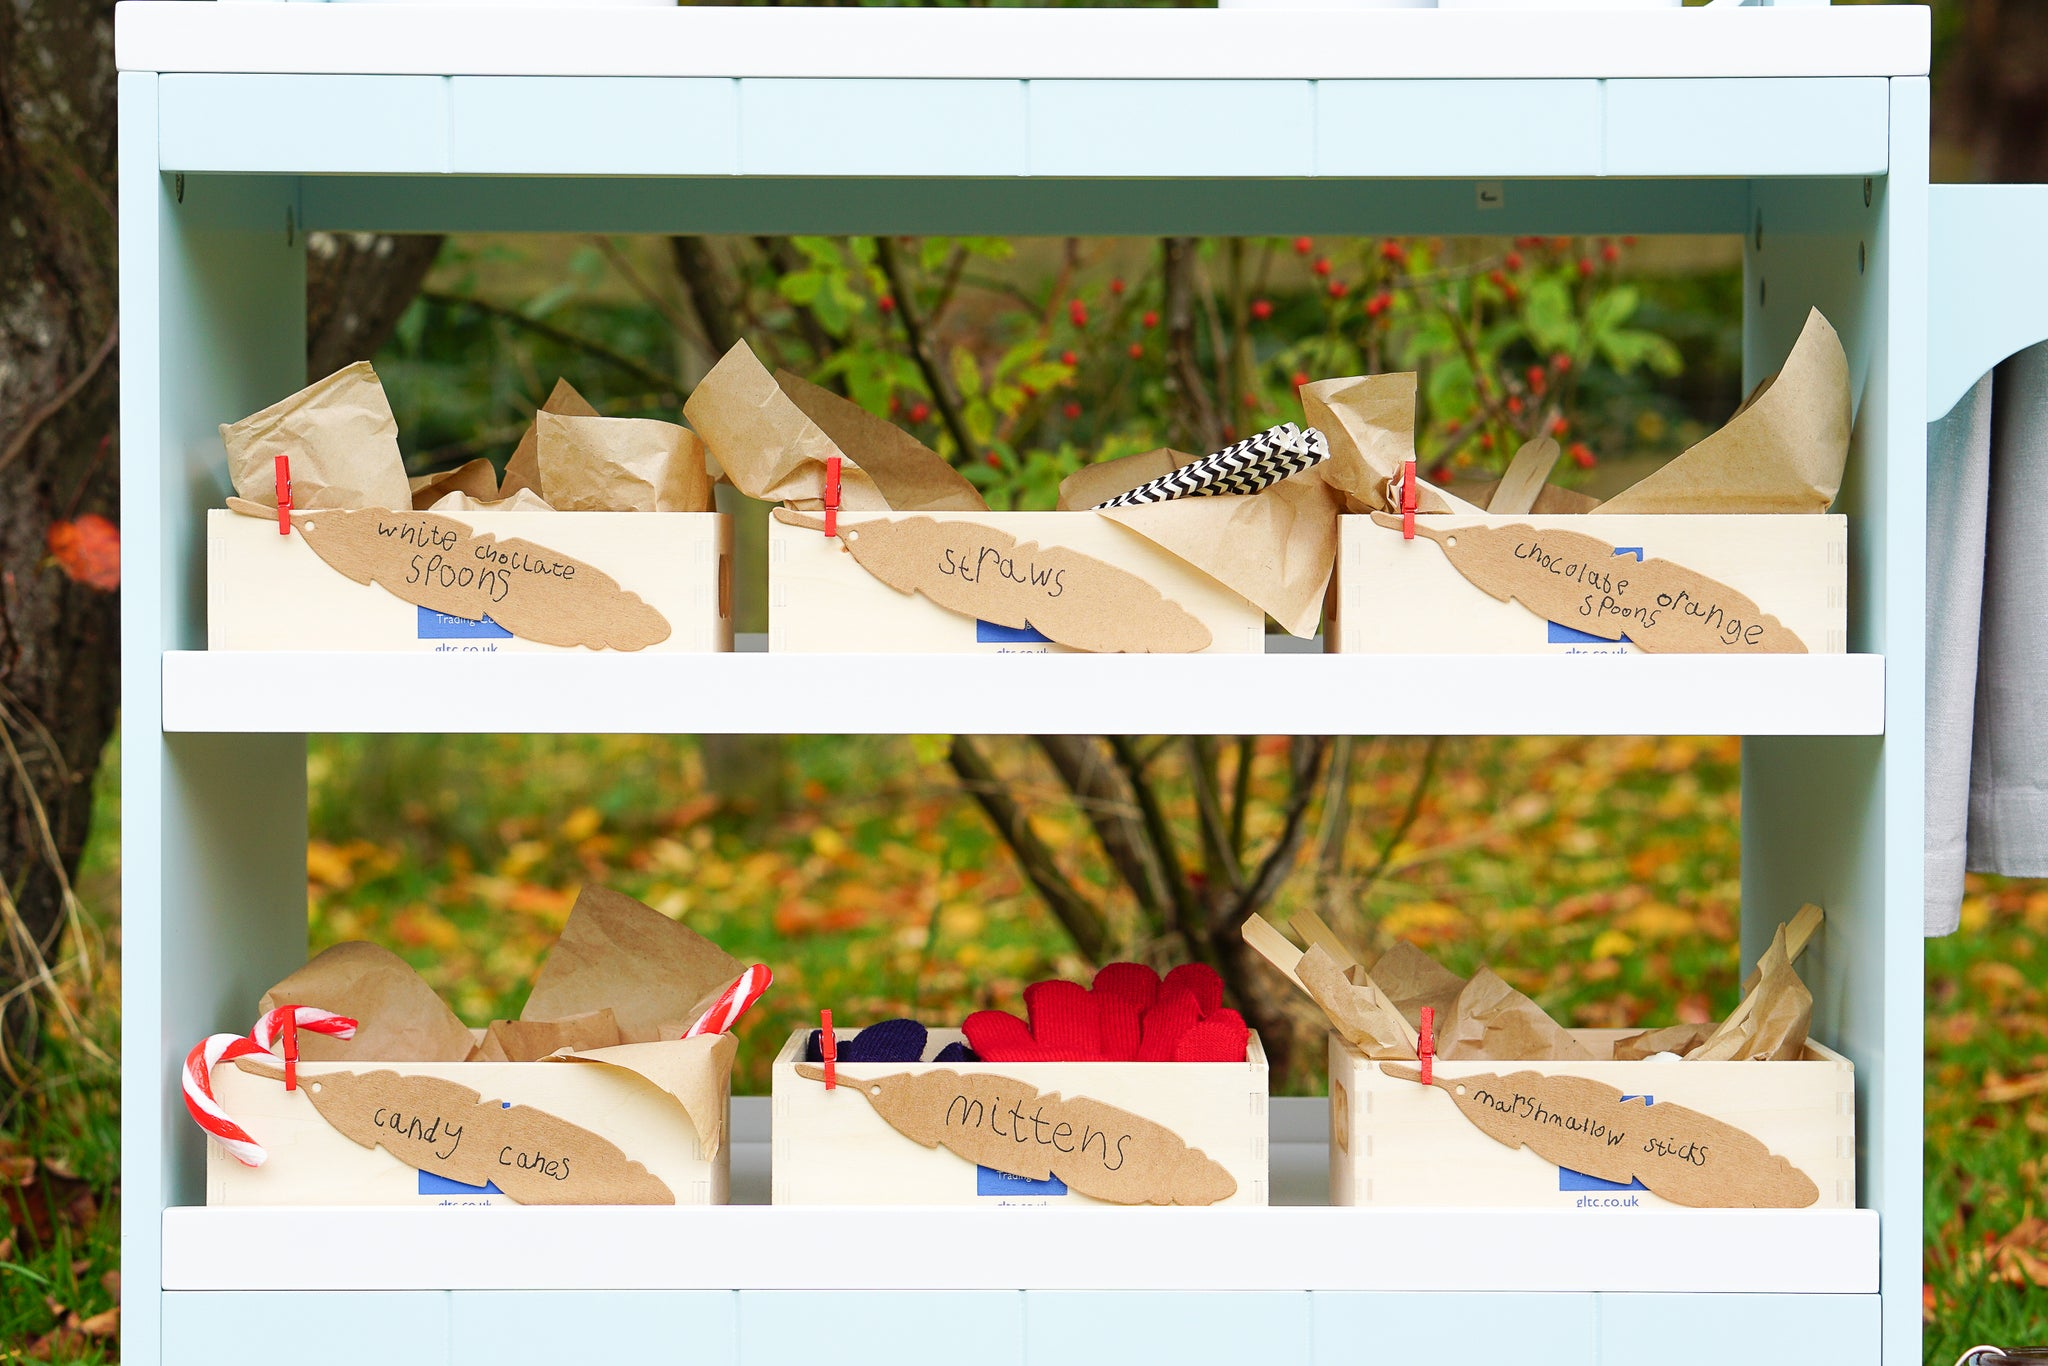 Set up a children's outdoor hot chocolate bar for hand warming role play fun